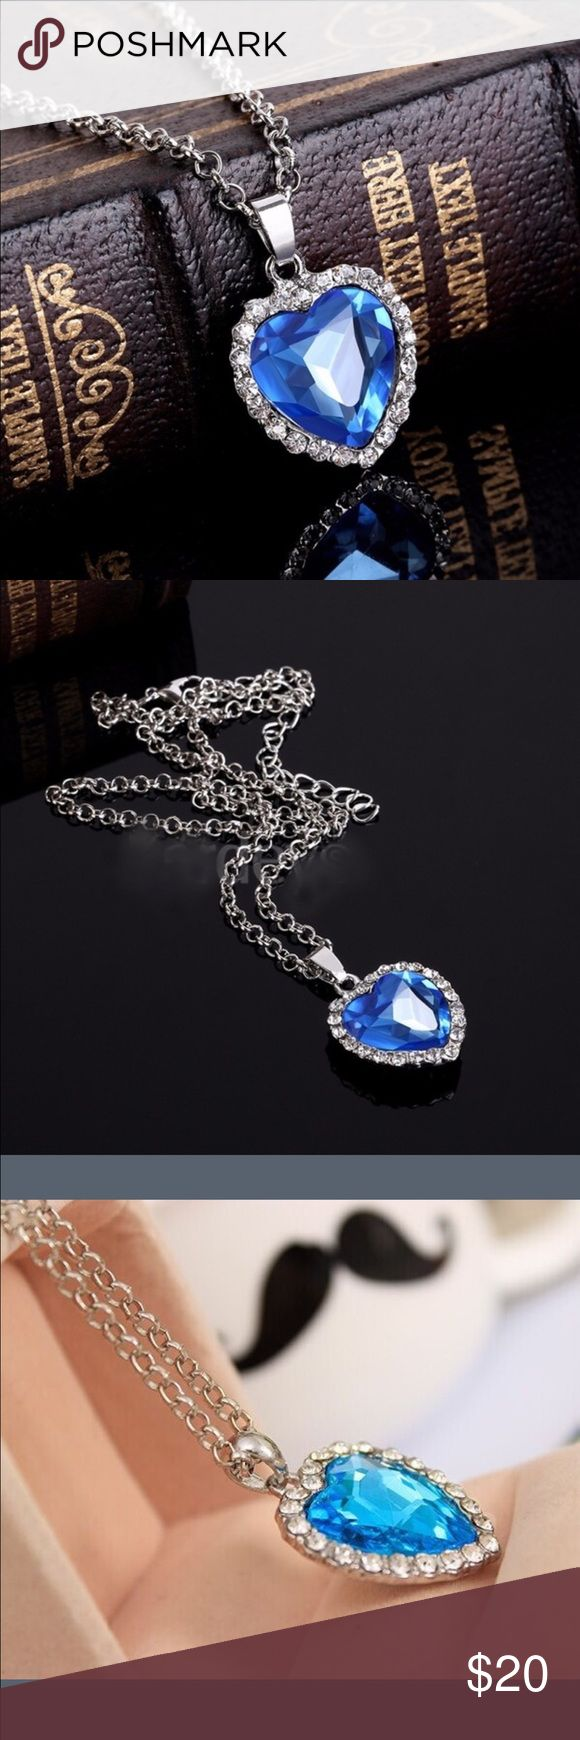 """Replica of """"Heart of the Ocean"""" Necklace This necklace is so pretty. It is of course a rhinestone and crystals. Such a beautiful tribute to a necklace well known. So sentimental  Jewelry Necklaces"""